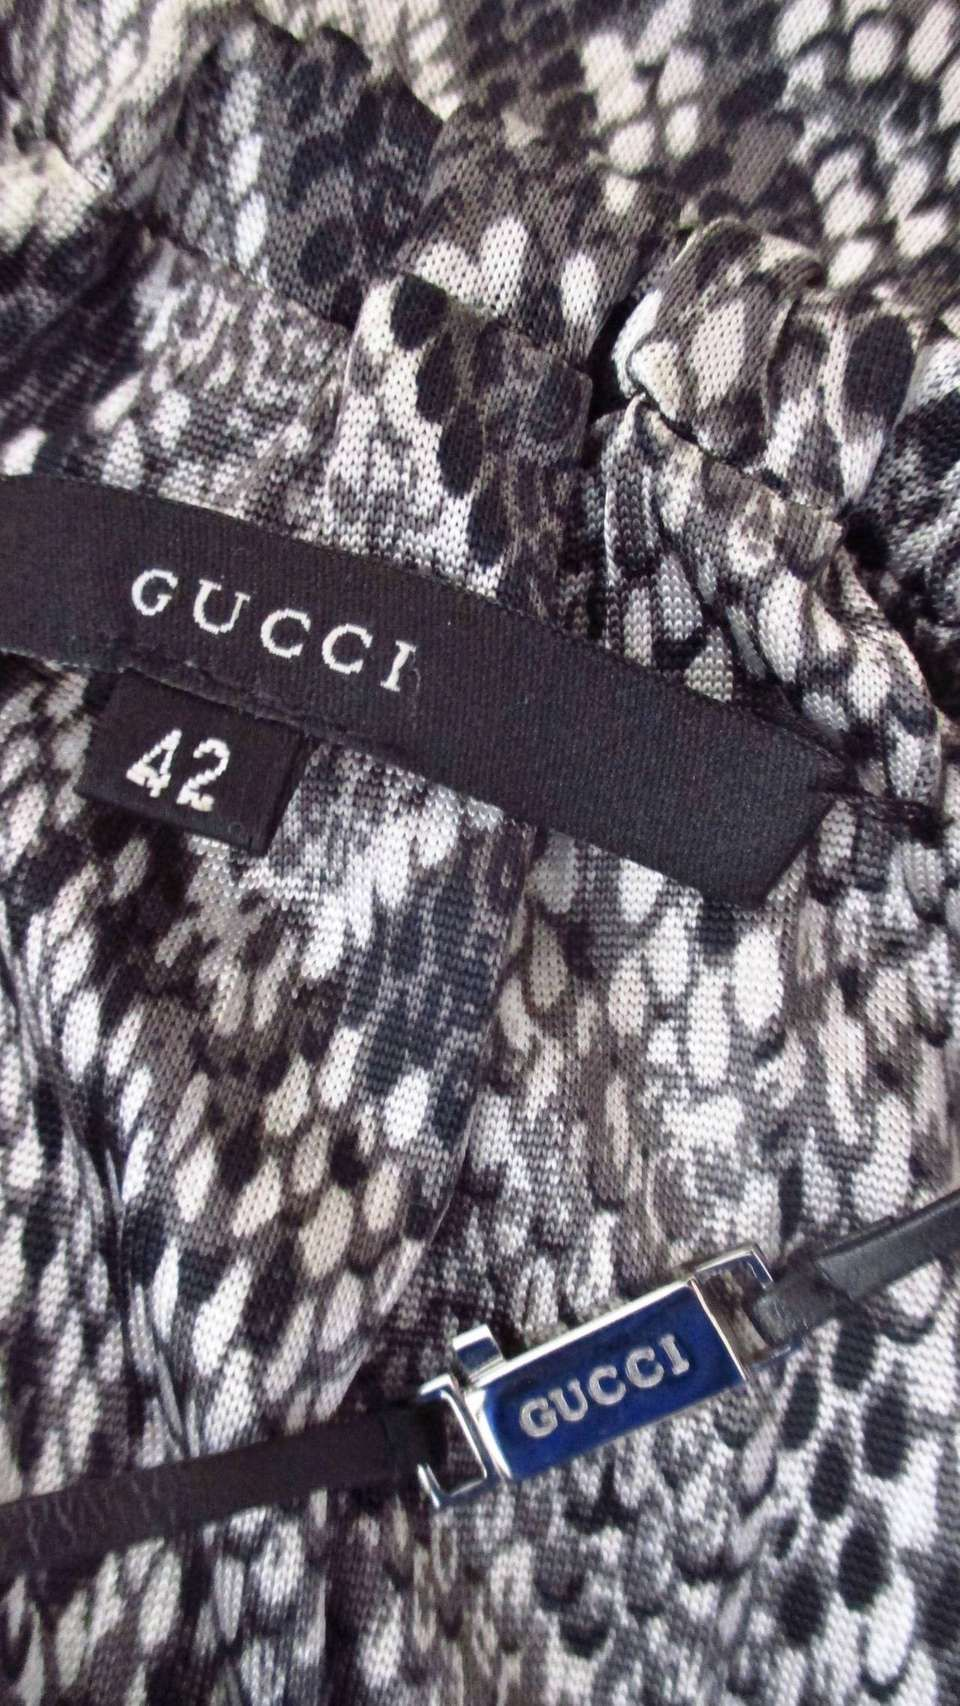 f2241424454 For Sale on 1stdibs - A fabulous iconic jersey dress from Tom Ford for Gucci  S S 2000 collection. The python print in shades of grey is the highlight of  the ...